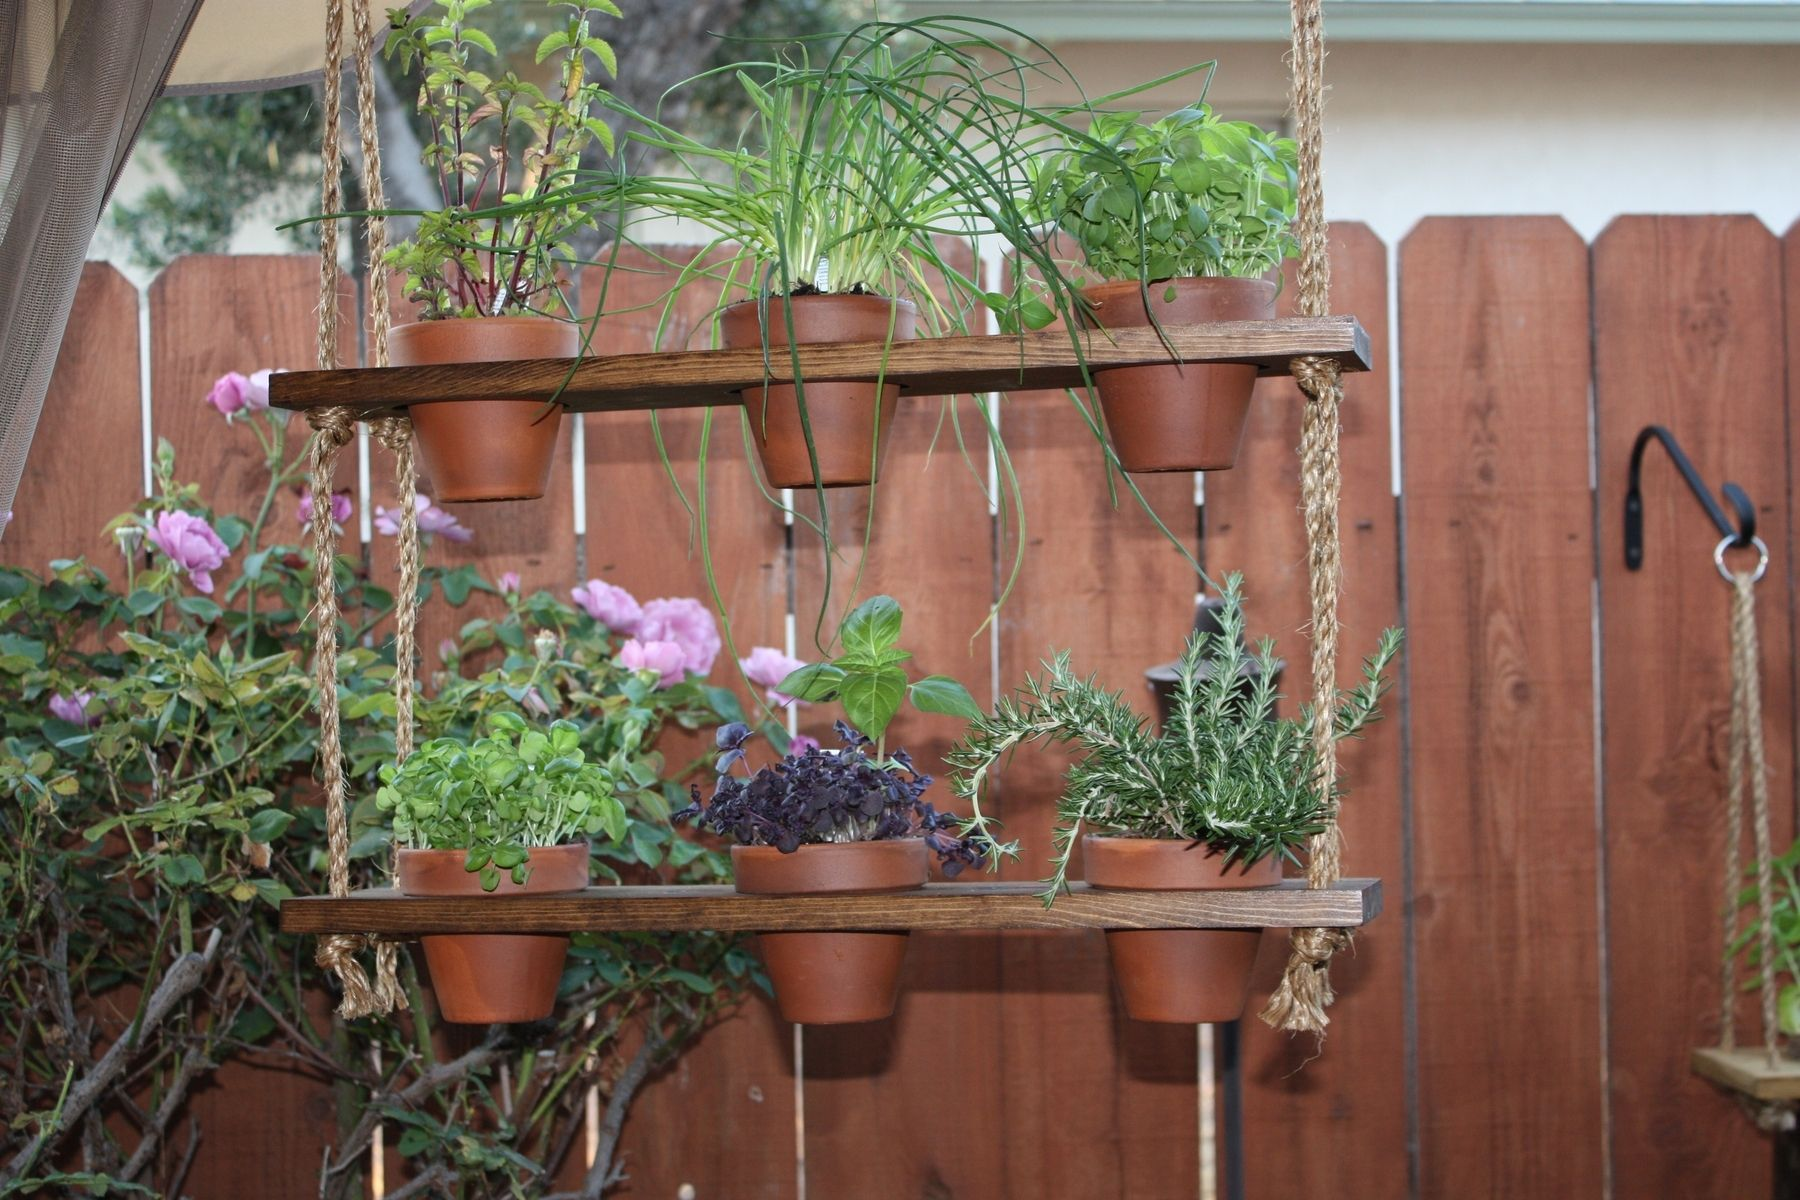 Handmade Hanging Herb Garden by Which Krafts | CustomMade.com